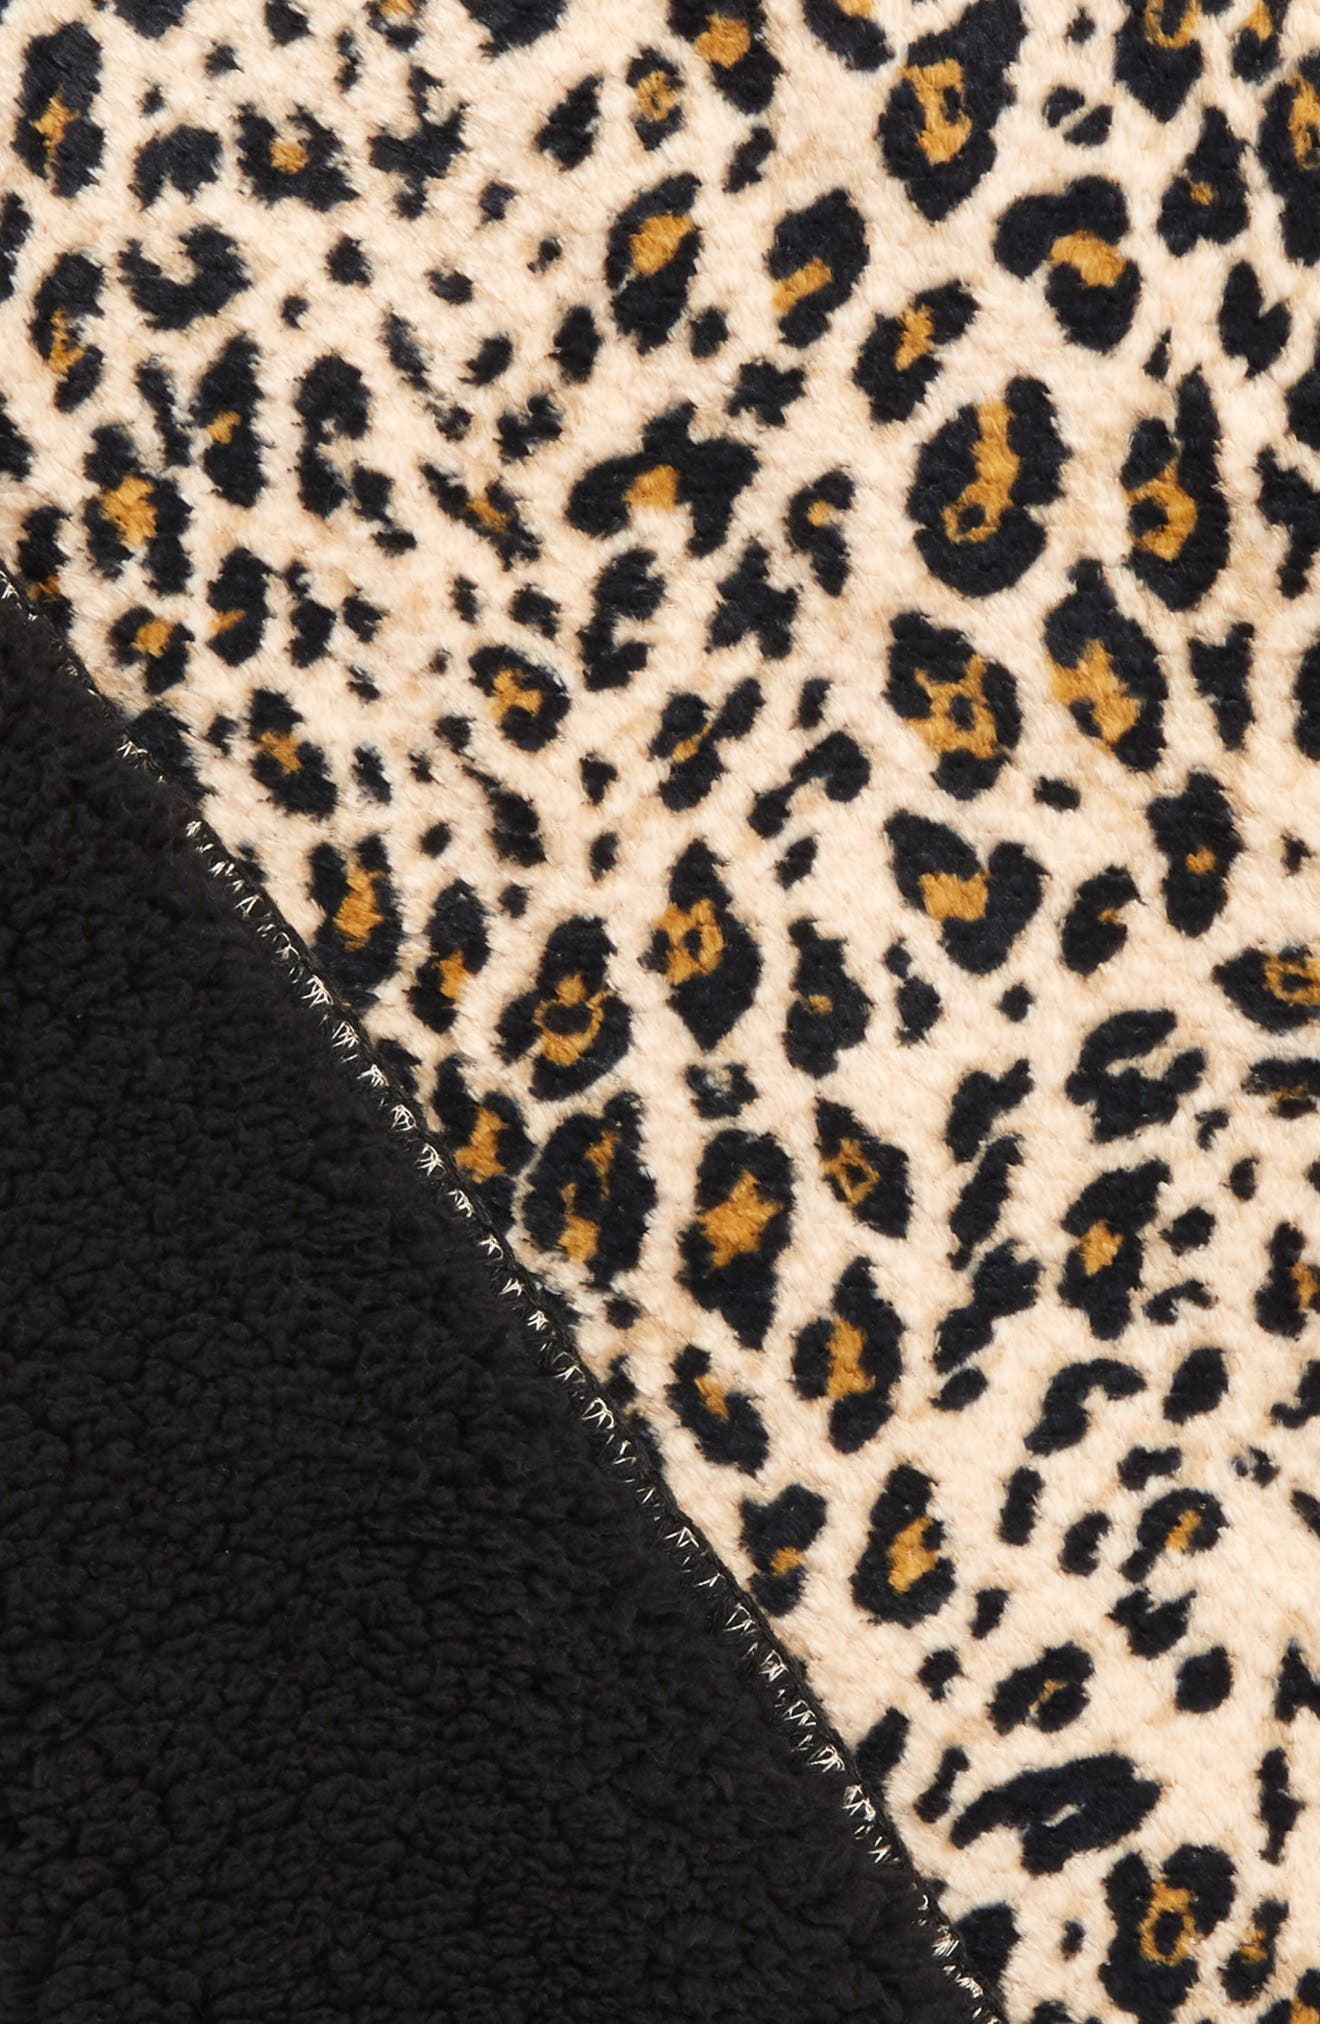 Leopard Print Faux Shearling Blanket,                             Alternate thumbnail 2, color,                             250